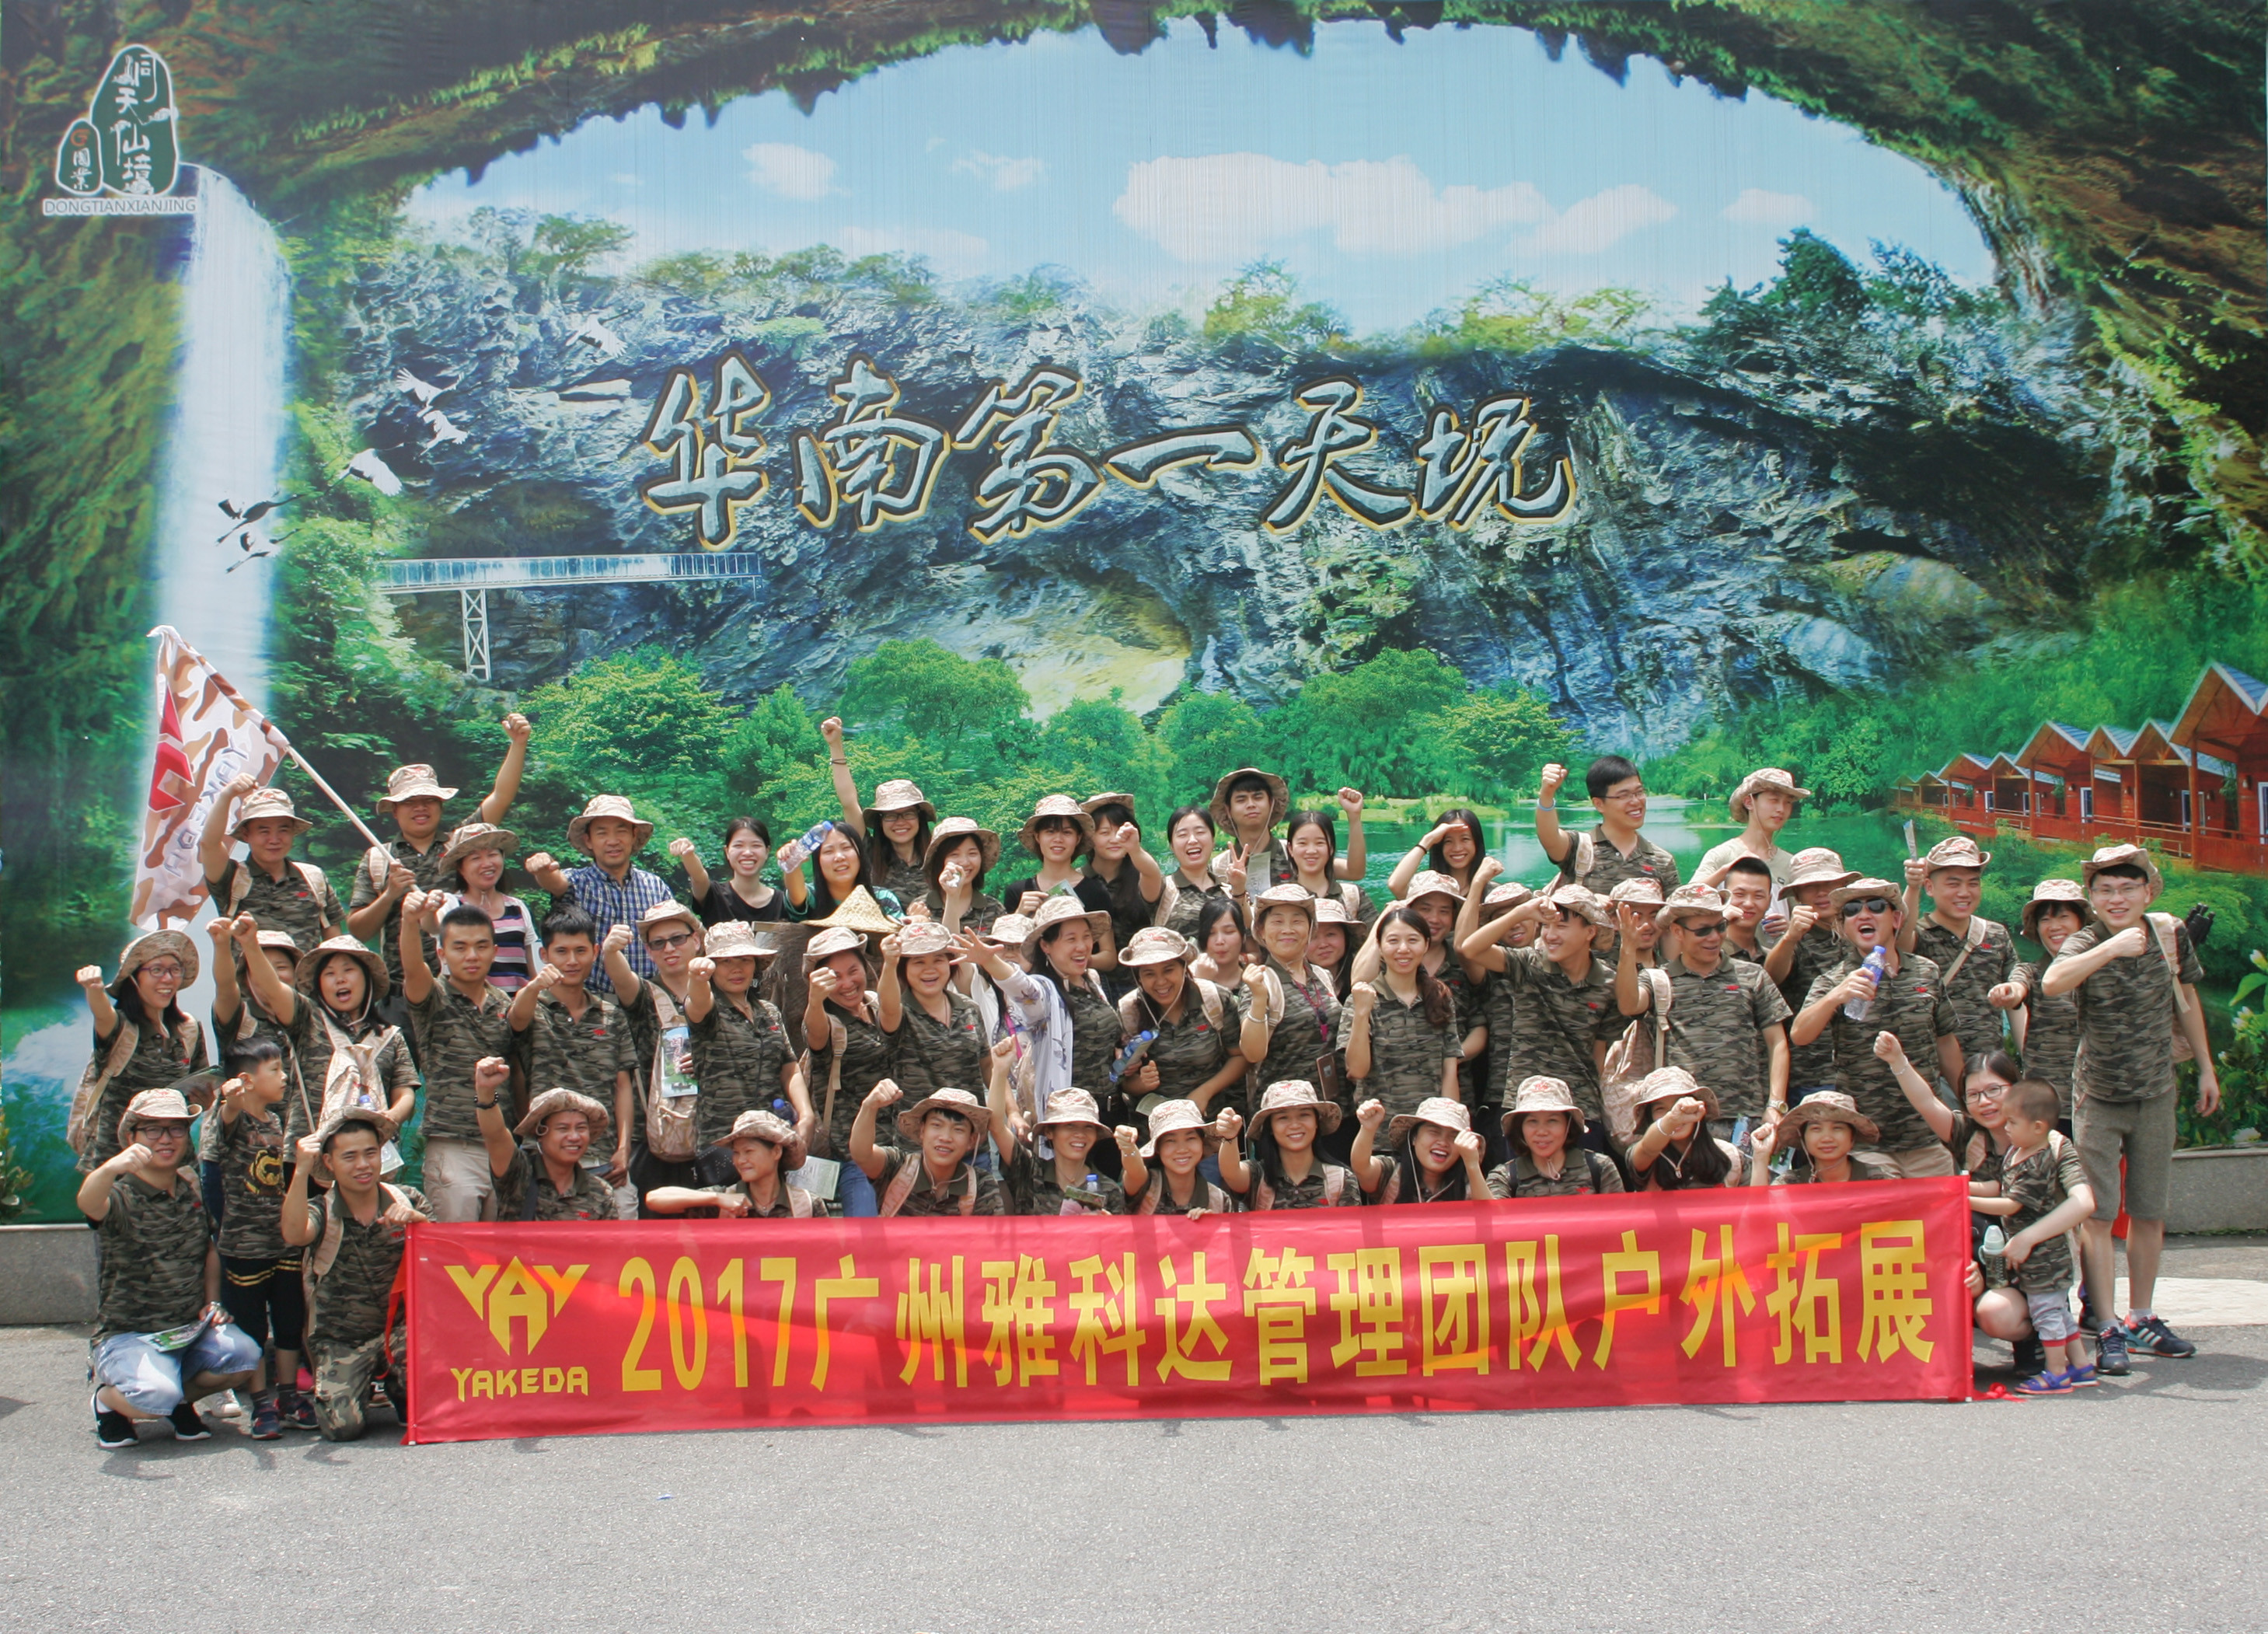 china latest news about 2017 YAKEDA management team outdoor development & two days a night tour